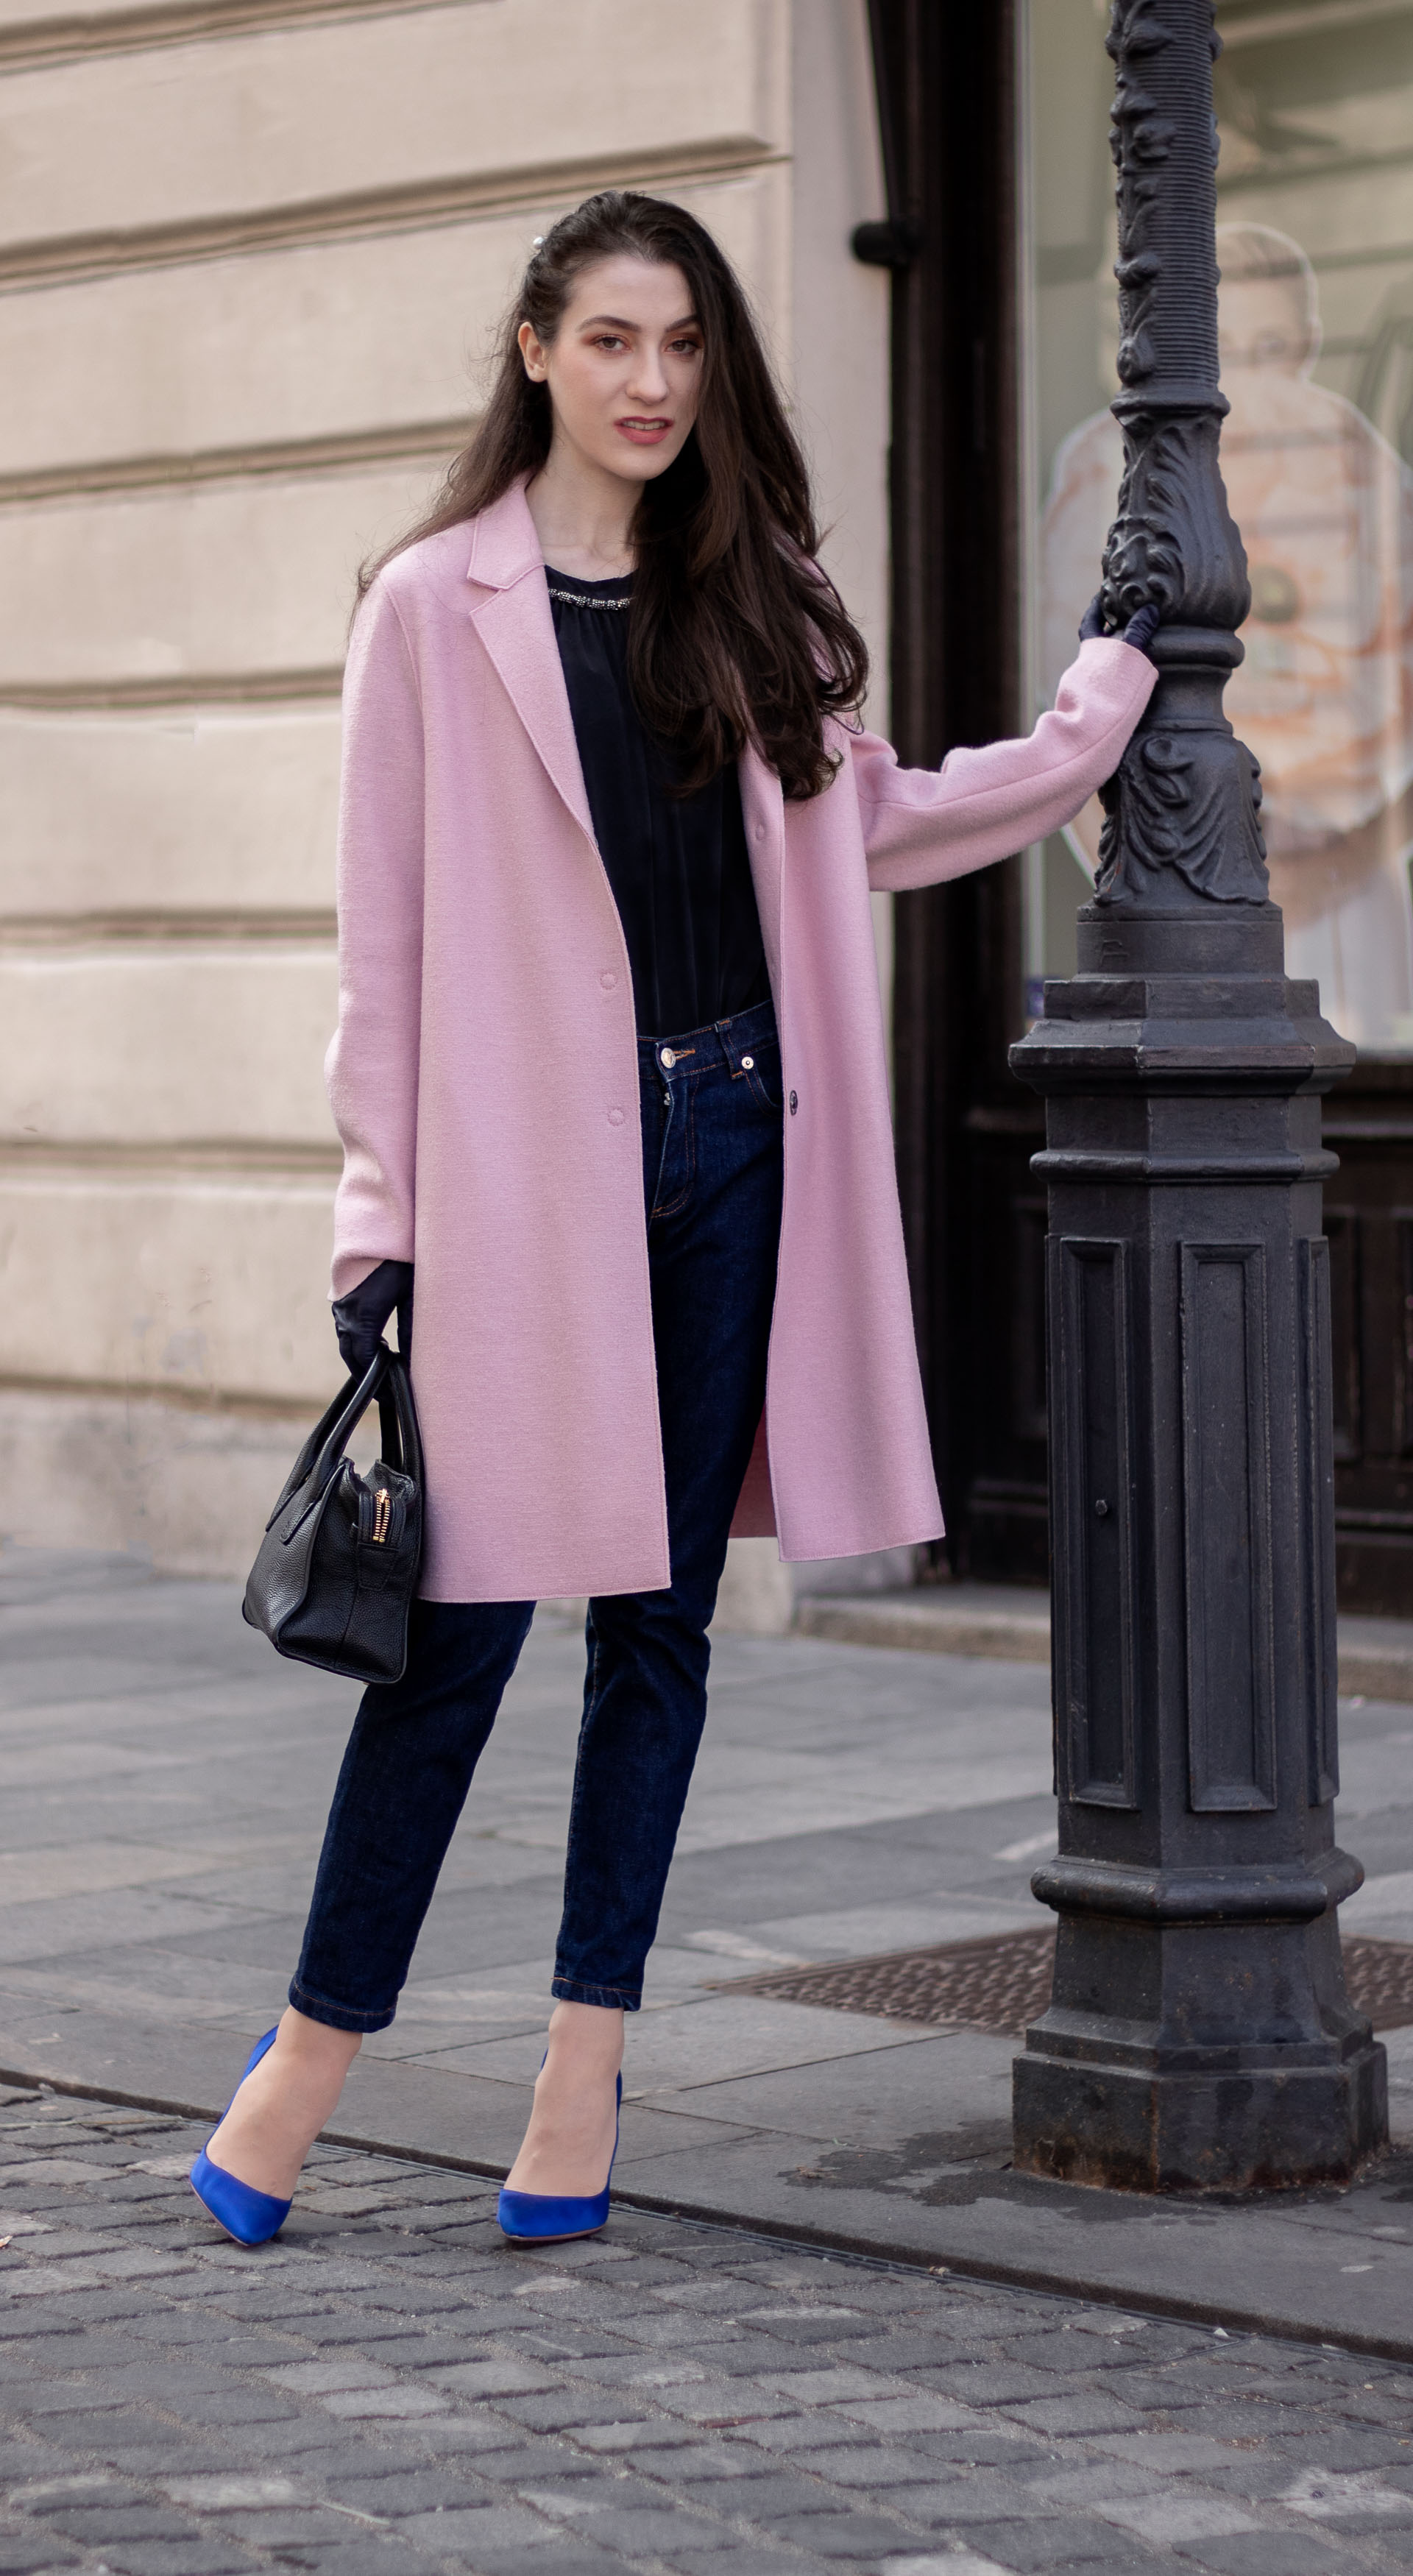 Must follow Fashion Blogger Veronika Lipar of Brunette from Wall Street dressed in oversize pink Harris Wharf London coat A.P.C. Paris dark blue denim jeans black top handle bag Forzieri blue leather gloves pearl hairpin leaning on the street lamp